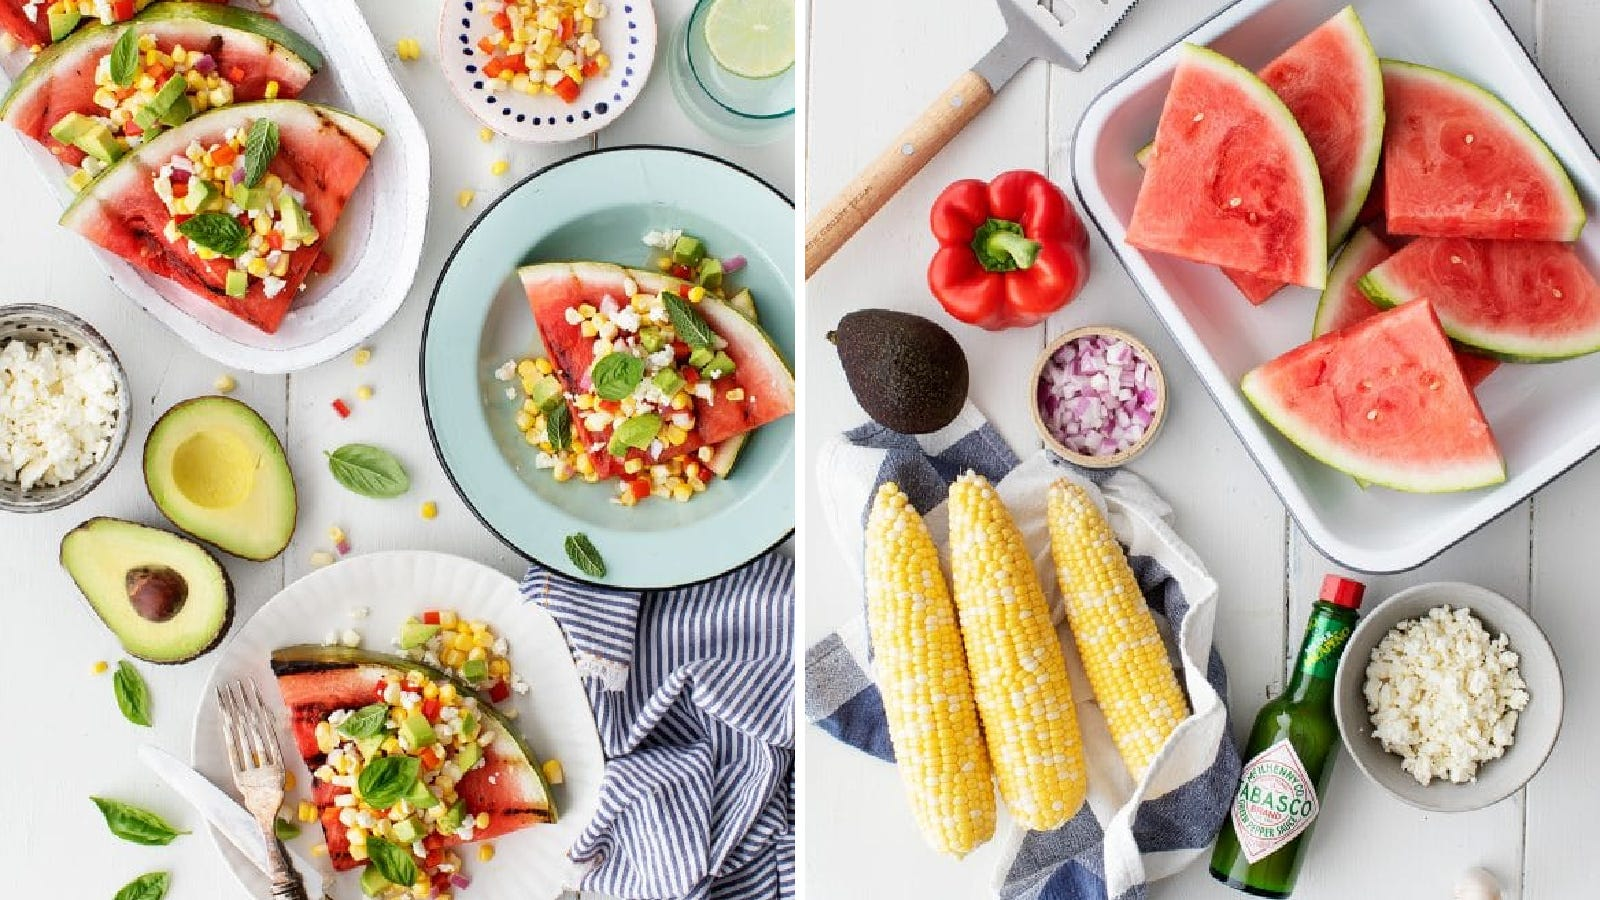 Finished plates of grilled watermelon topped with corn salsa, and all the ingredients used to make the meal.